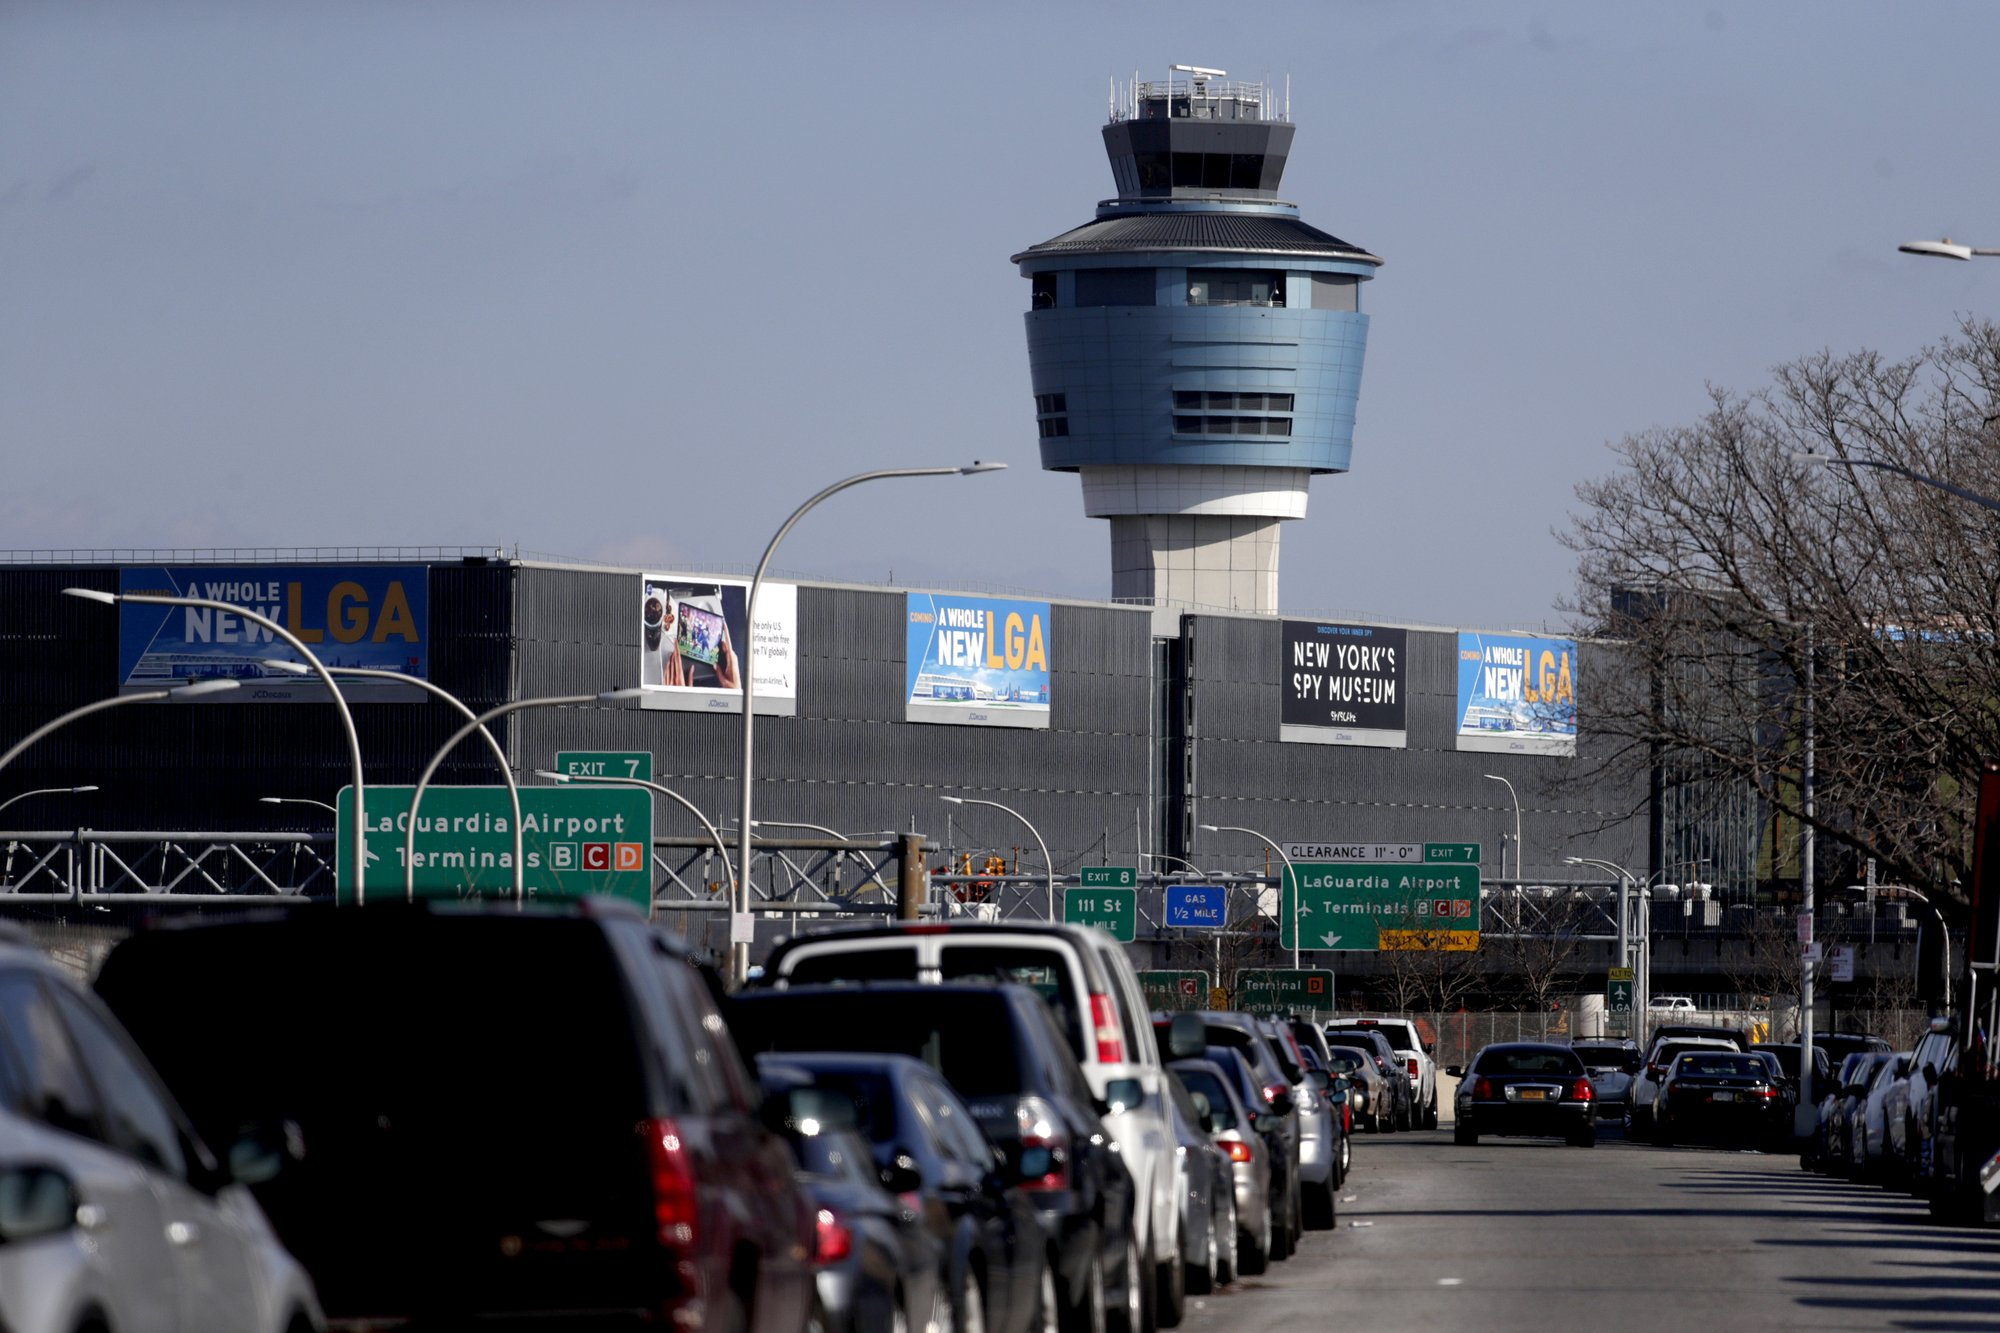 FAA says an increase in sick leave causes flight delays